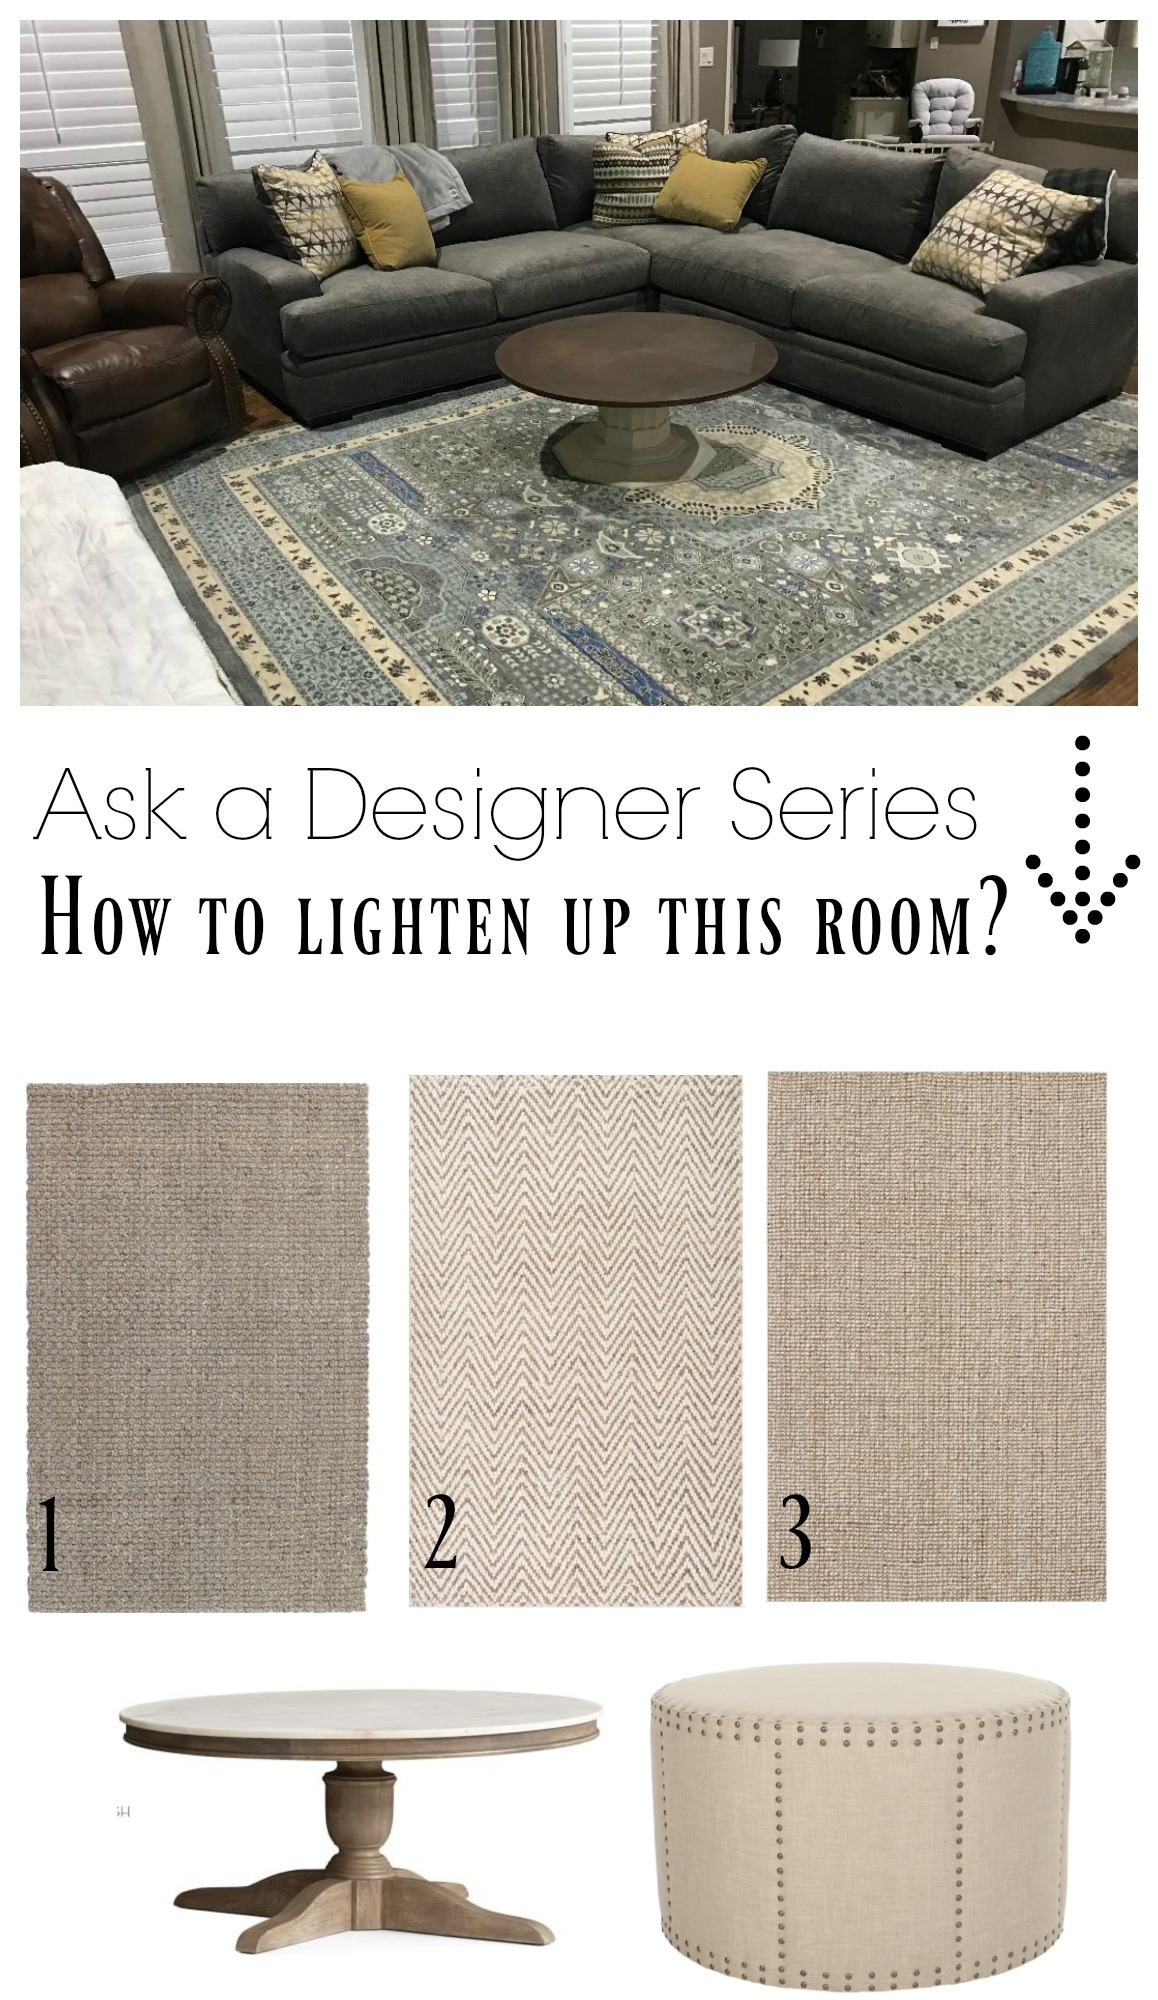 Ask a Designer Series- What Rug to do to lighten up the room?